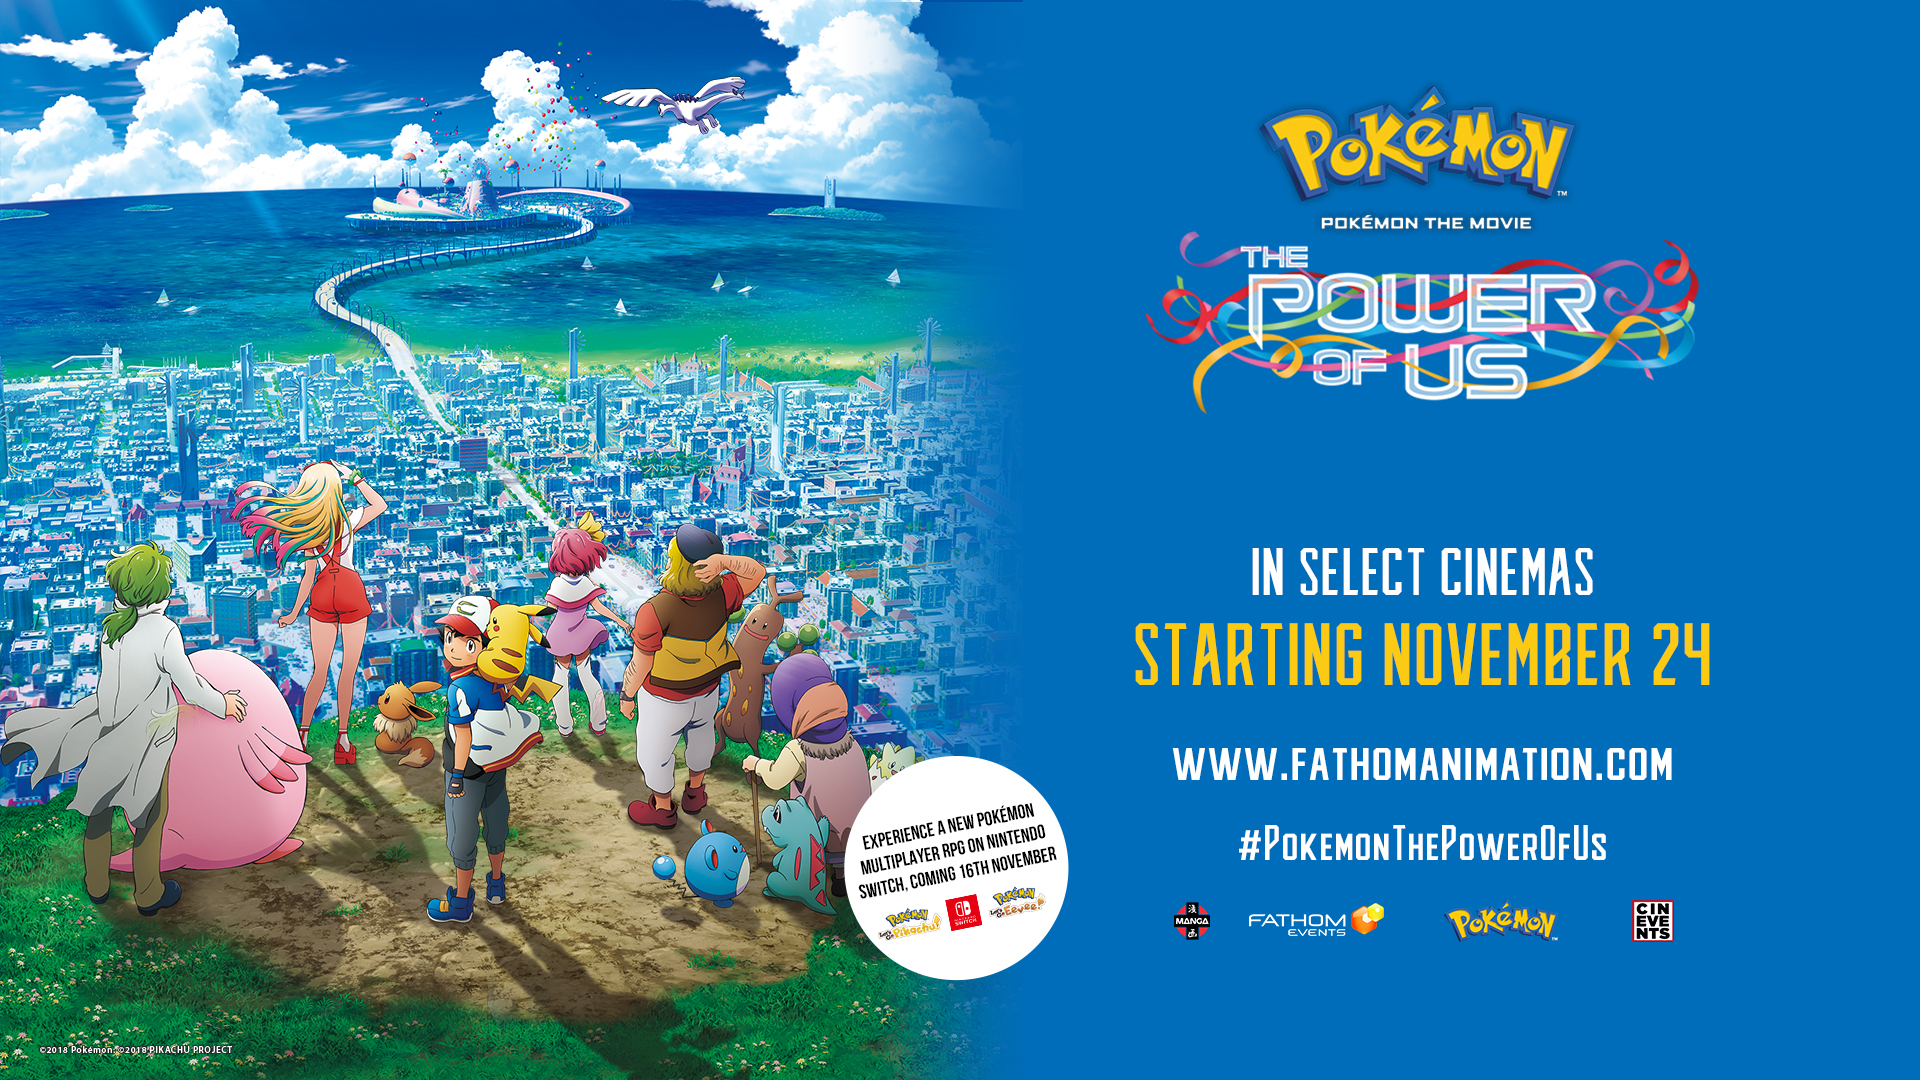 Win Tickets To A Screening Of Pokemon The Movie The Power Of Us